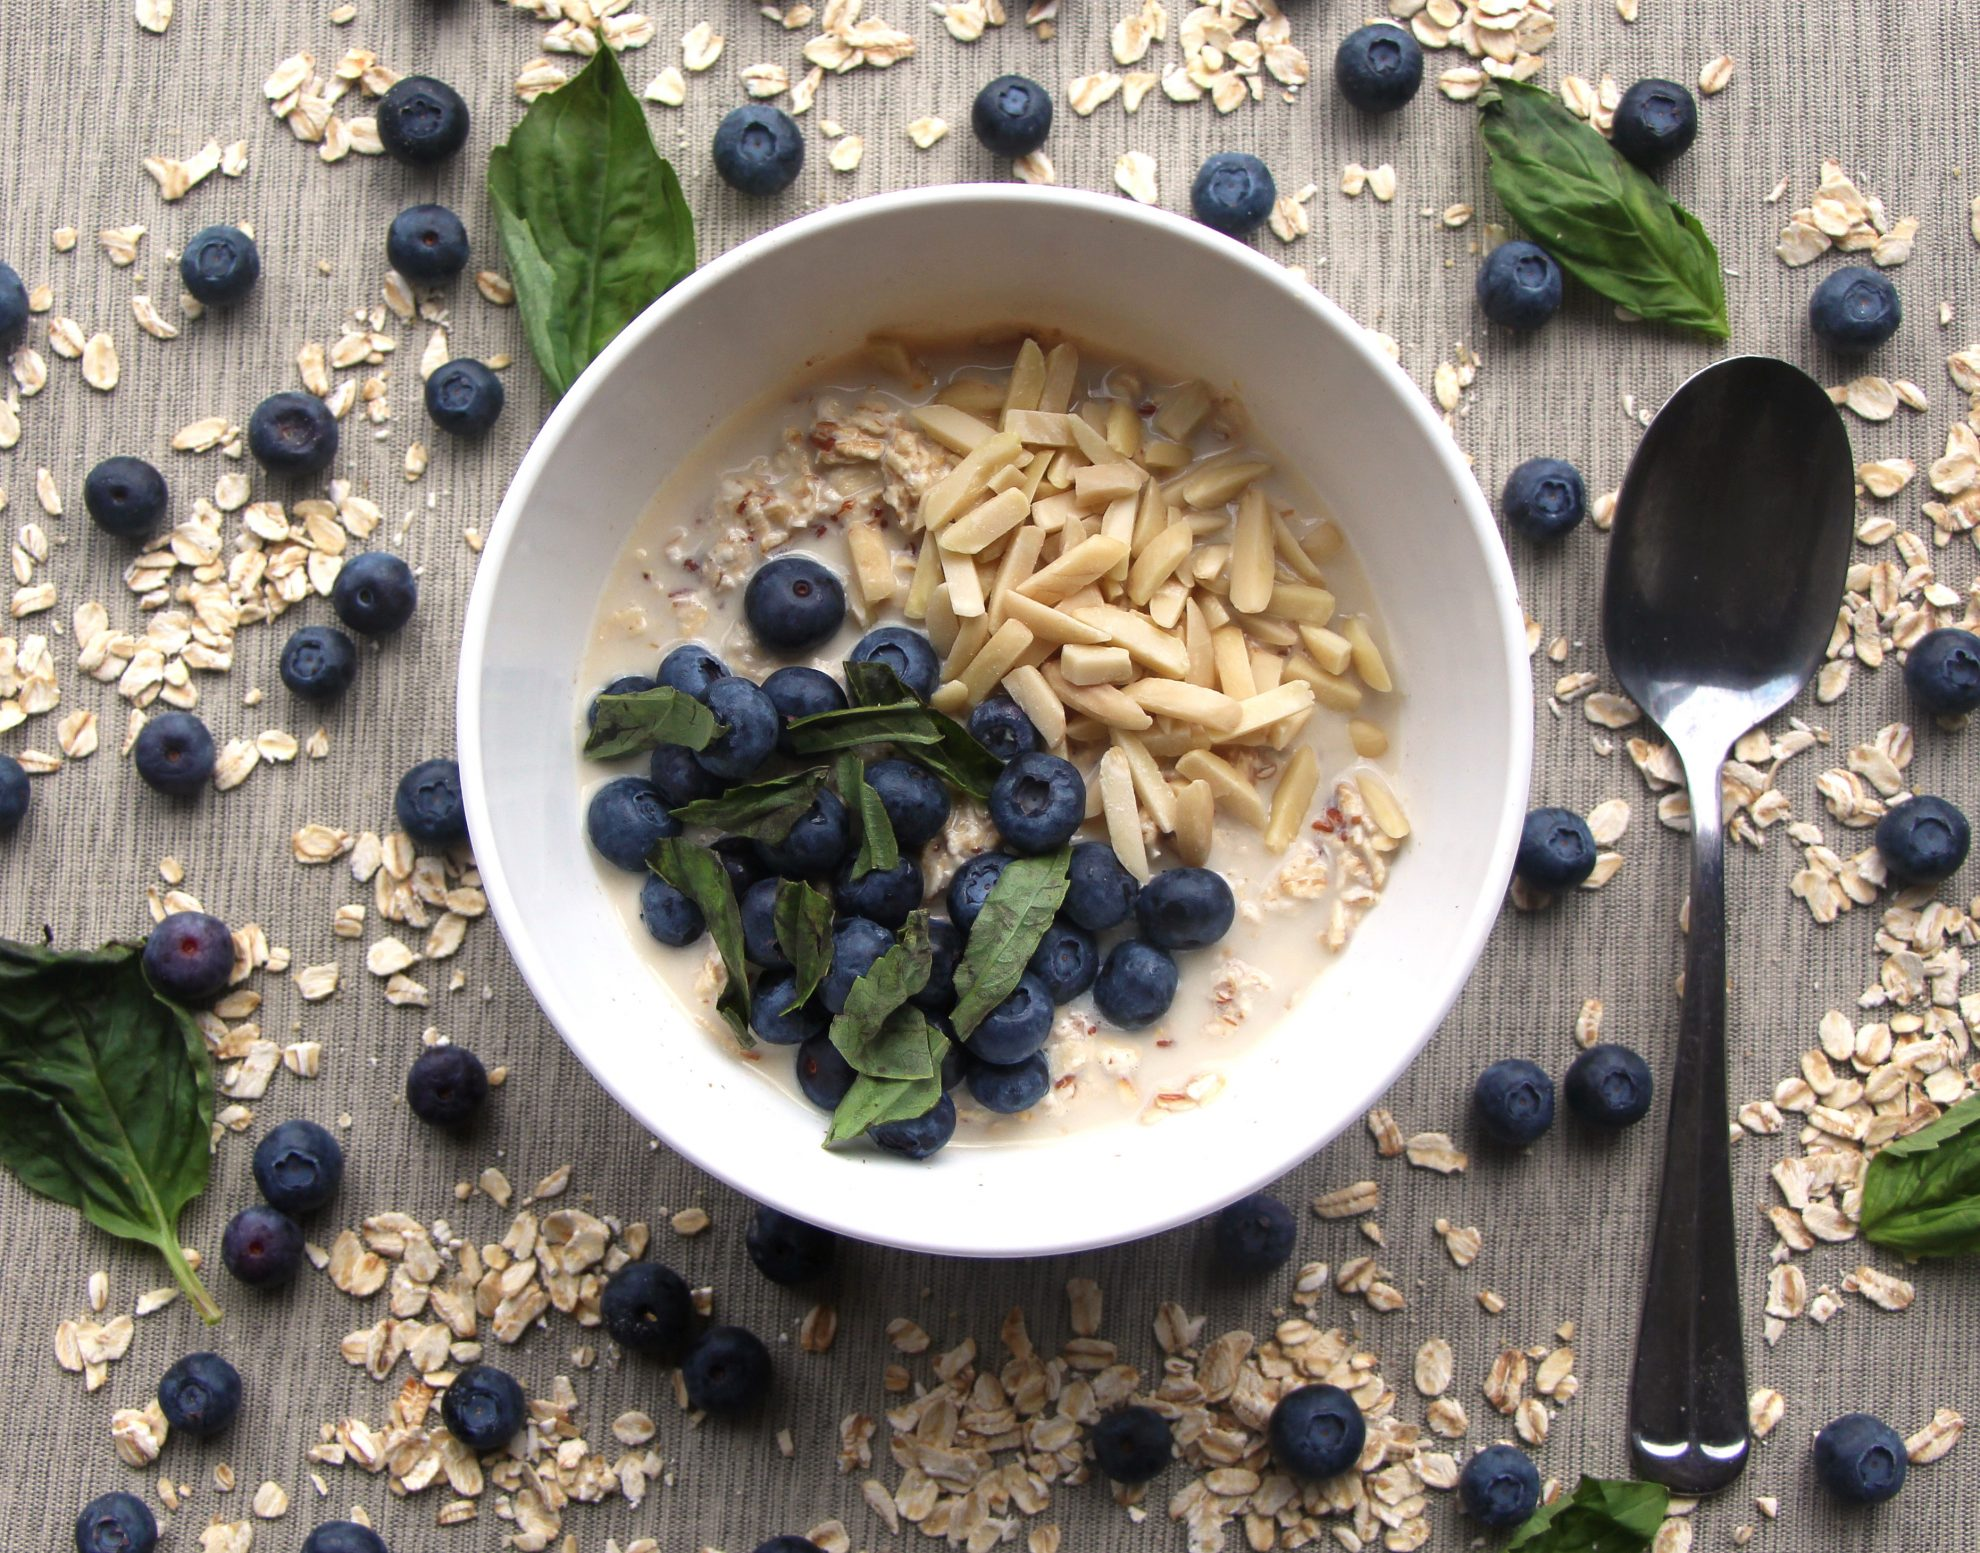 Best food photography tips for photographing this beautiful bowl of blueberry oatmeal